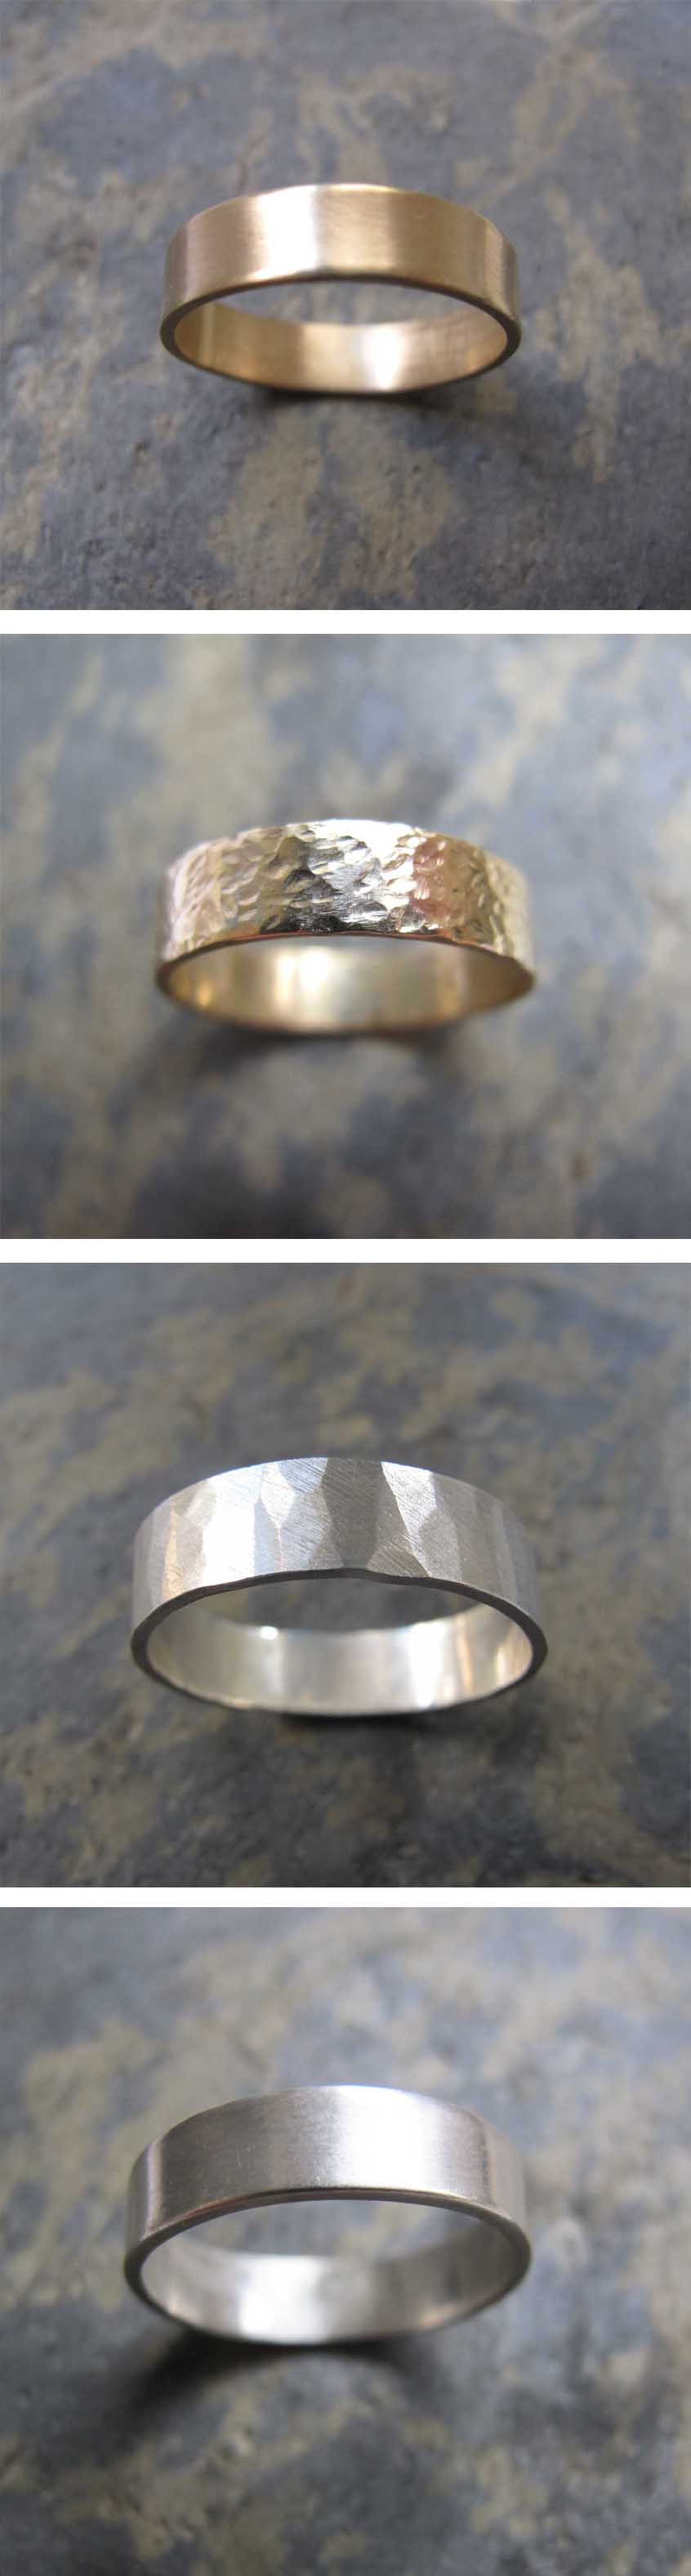 Men's gold and silver wedding bands